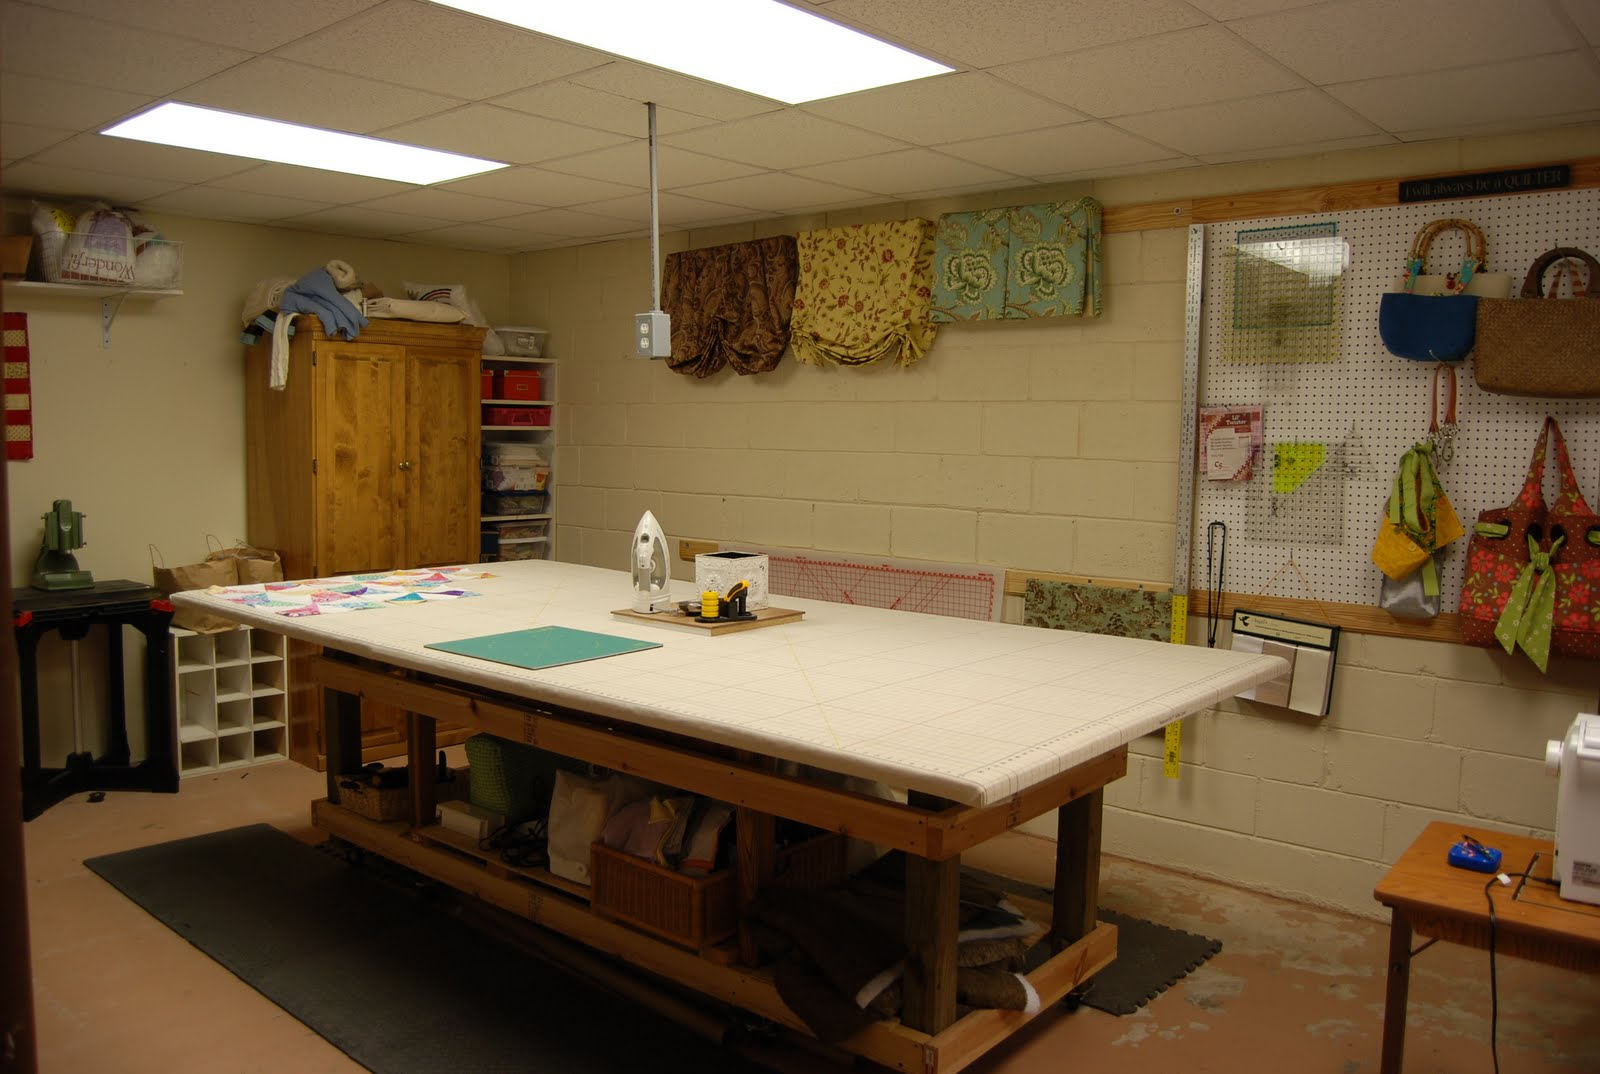 Spin the bobbin my sewing studio this is my awesome cutting table that my husband made besides quilting i make custom window treatments for friends family and occasionally clients watchthetrailerfo